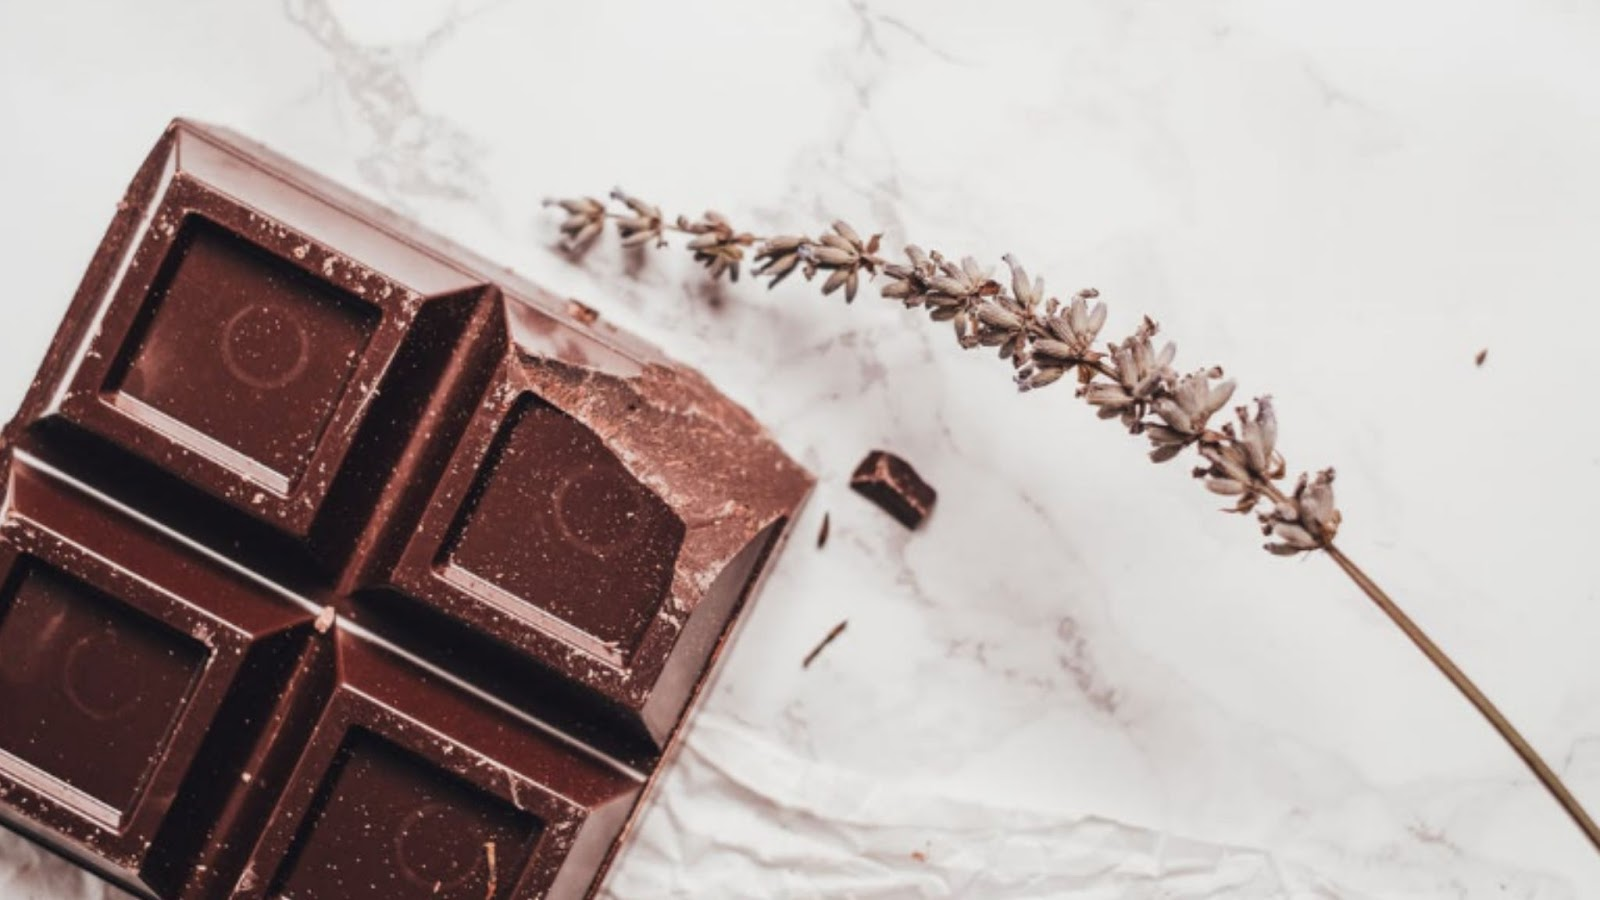 Chocolate edibles are a popular choice as V-day presents.